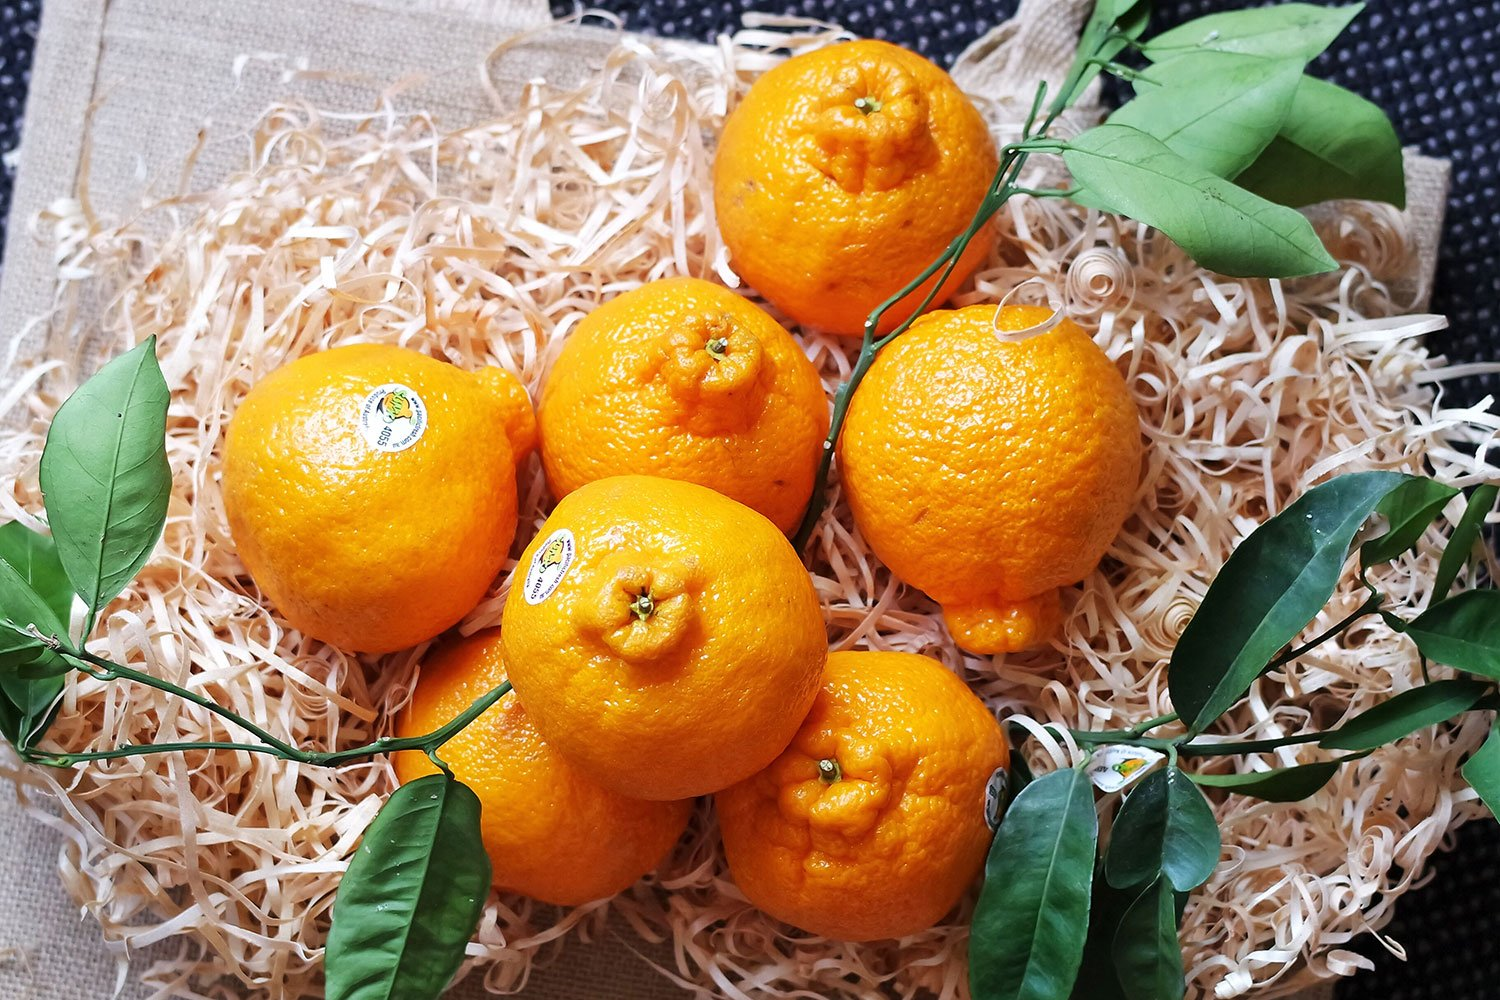 7 plump sumo mandarins are laid upon a bed of wood shavings, adorned with branches from the tree they were harvested off